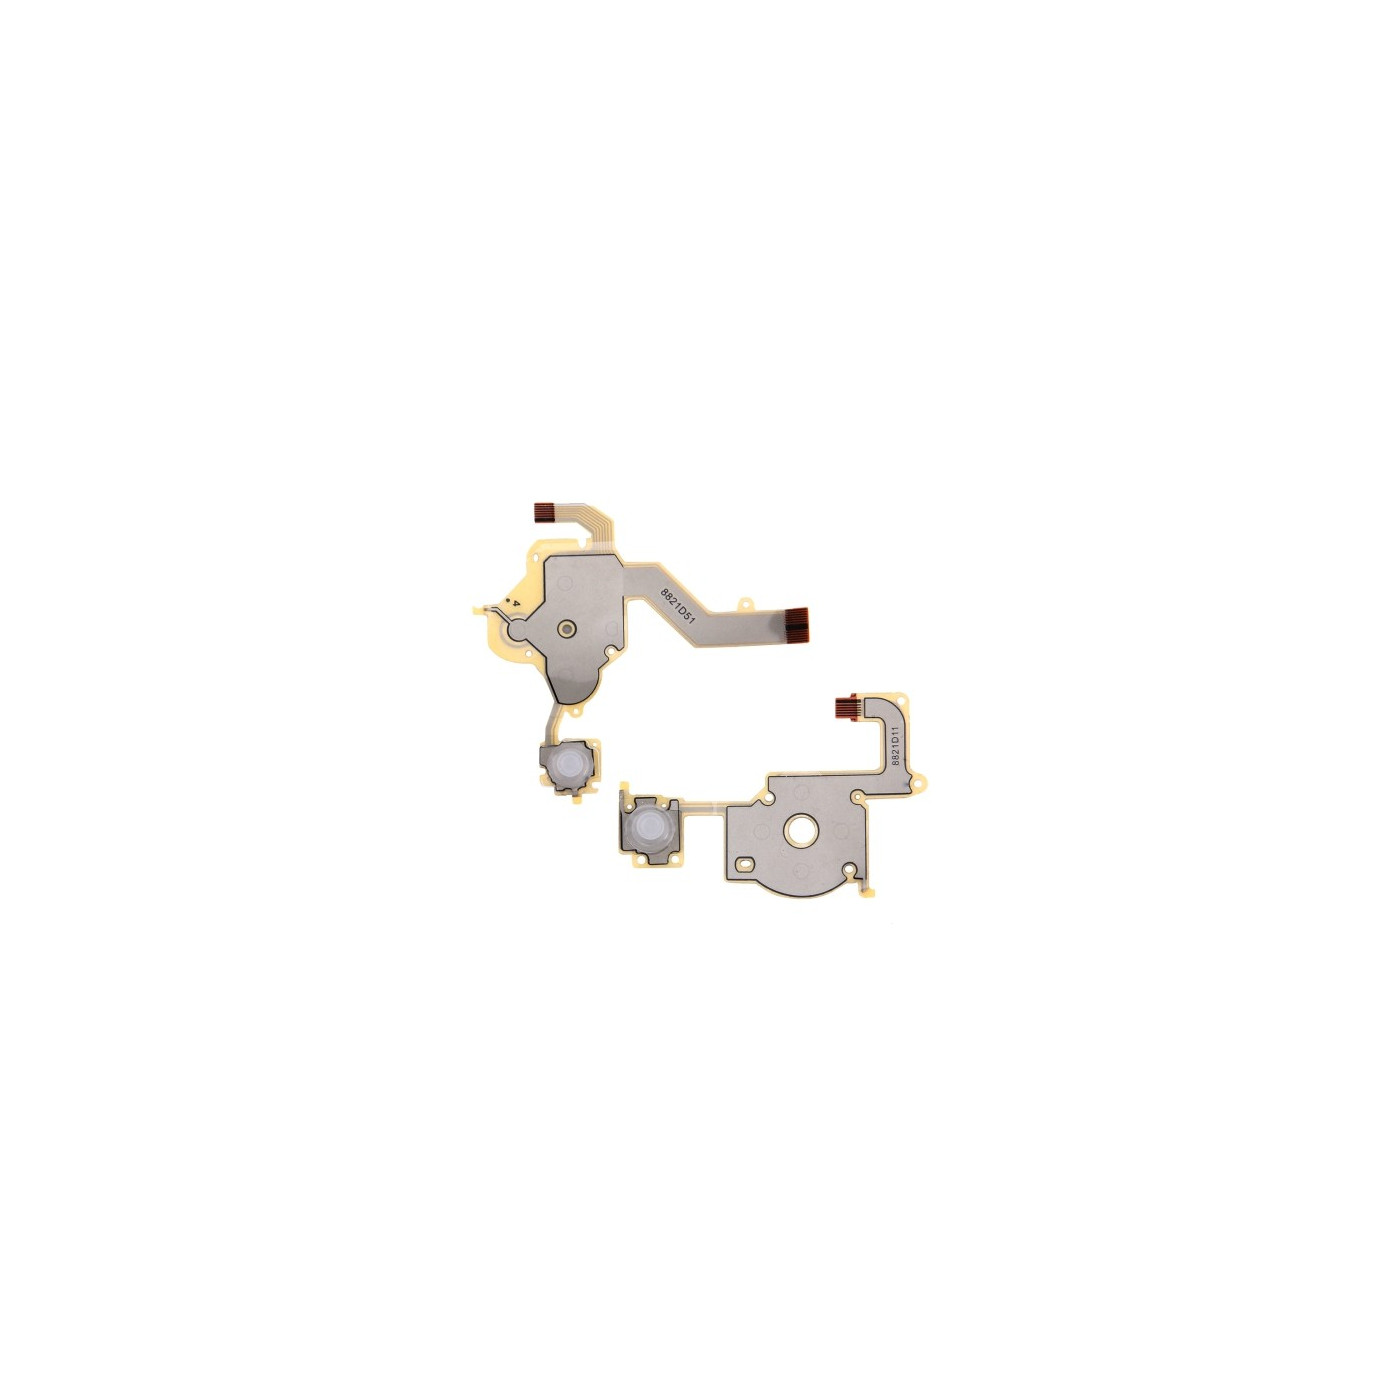 FLAT BUTTONS INSIDE SONY PSP 3000 3004 PCB LEFT RIGHT DIRECTION